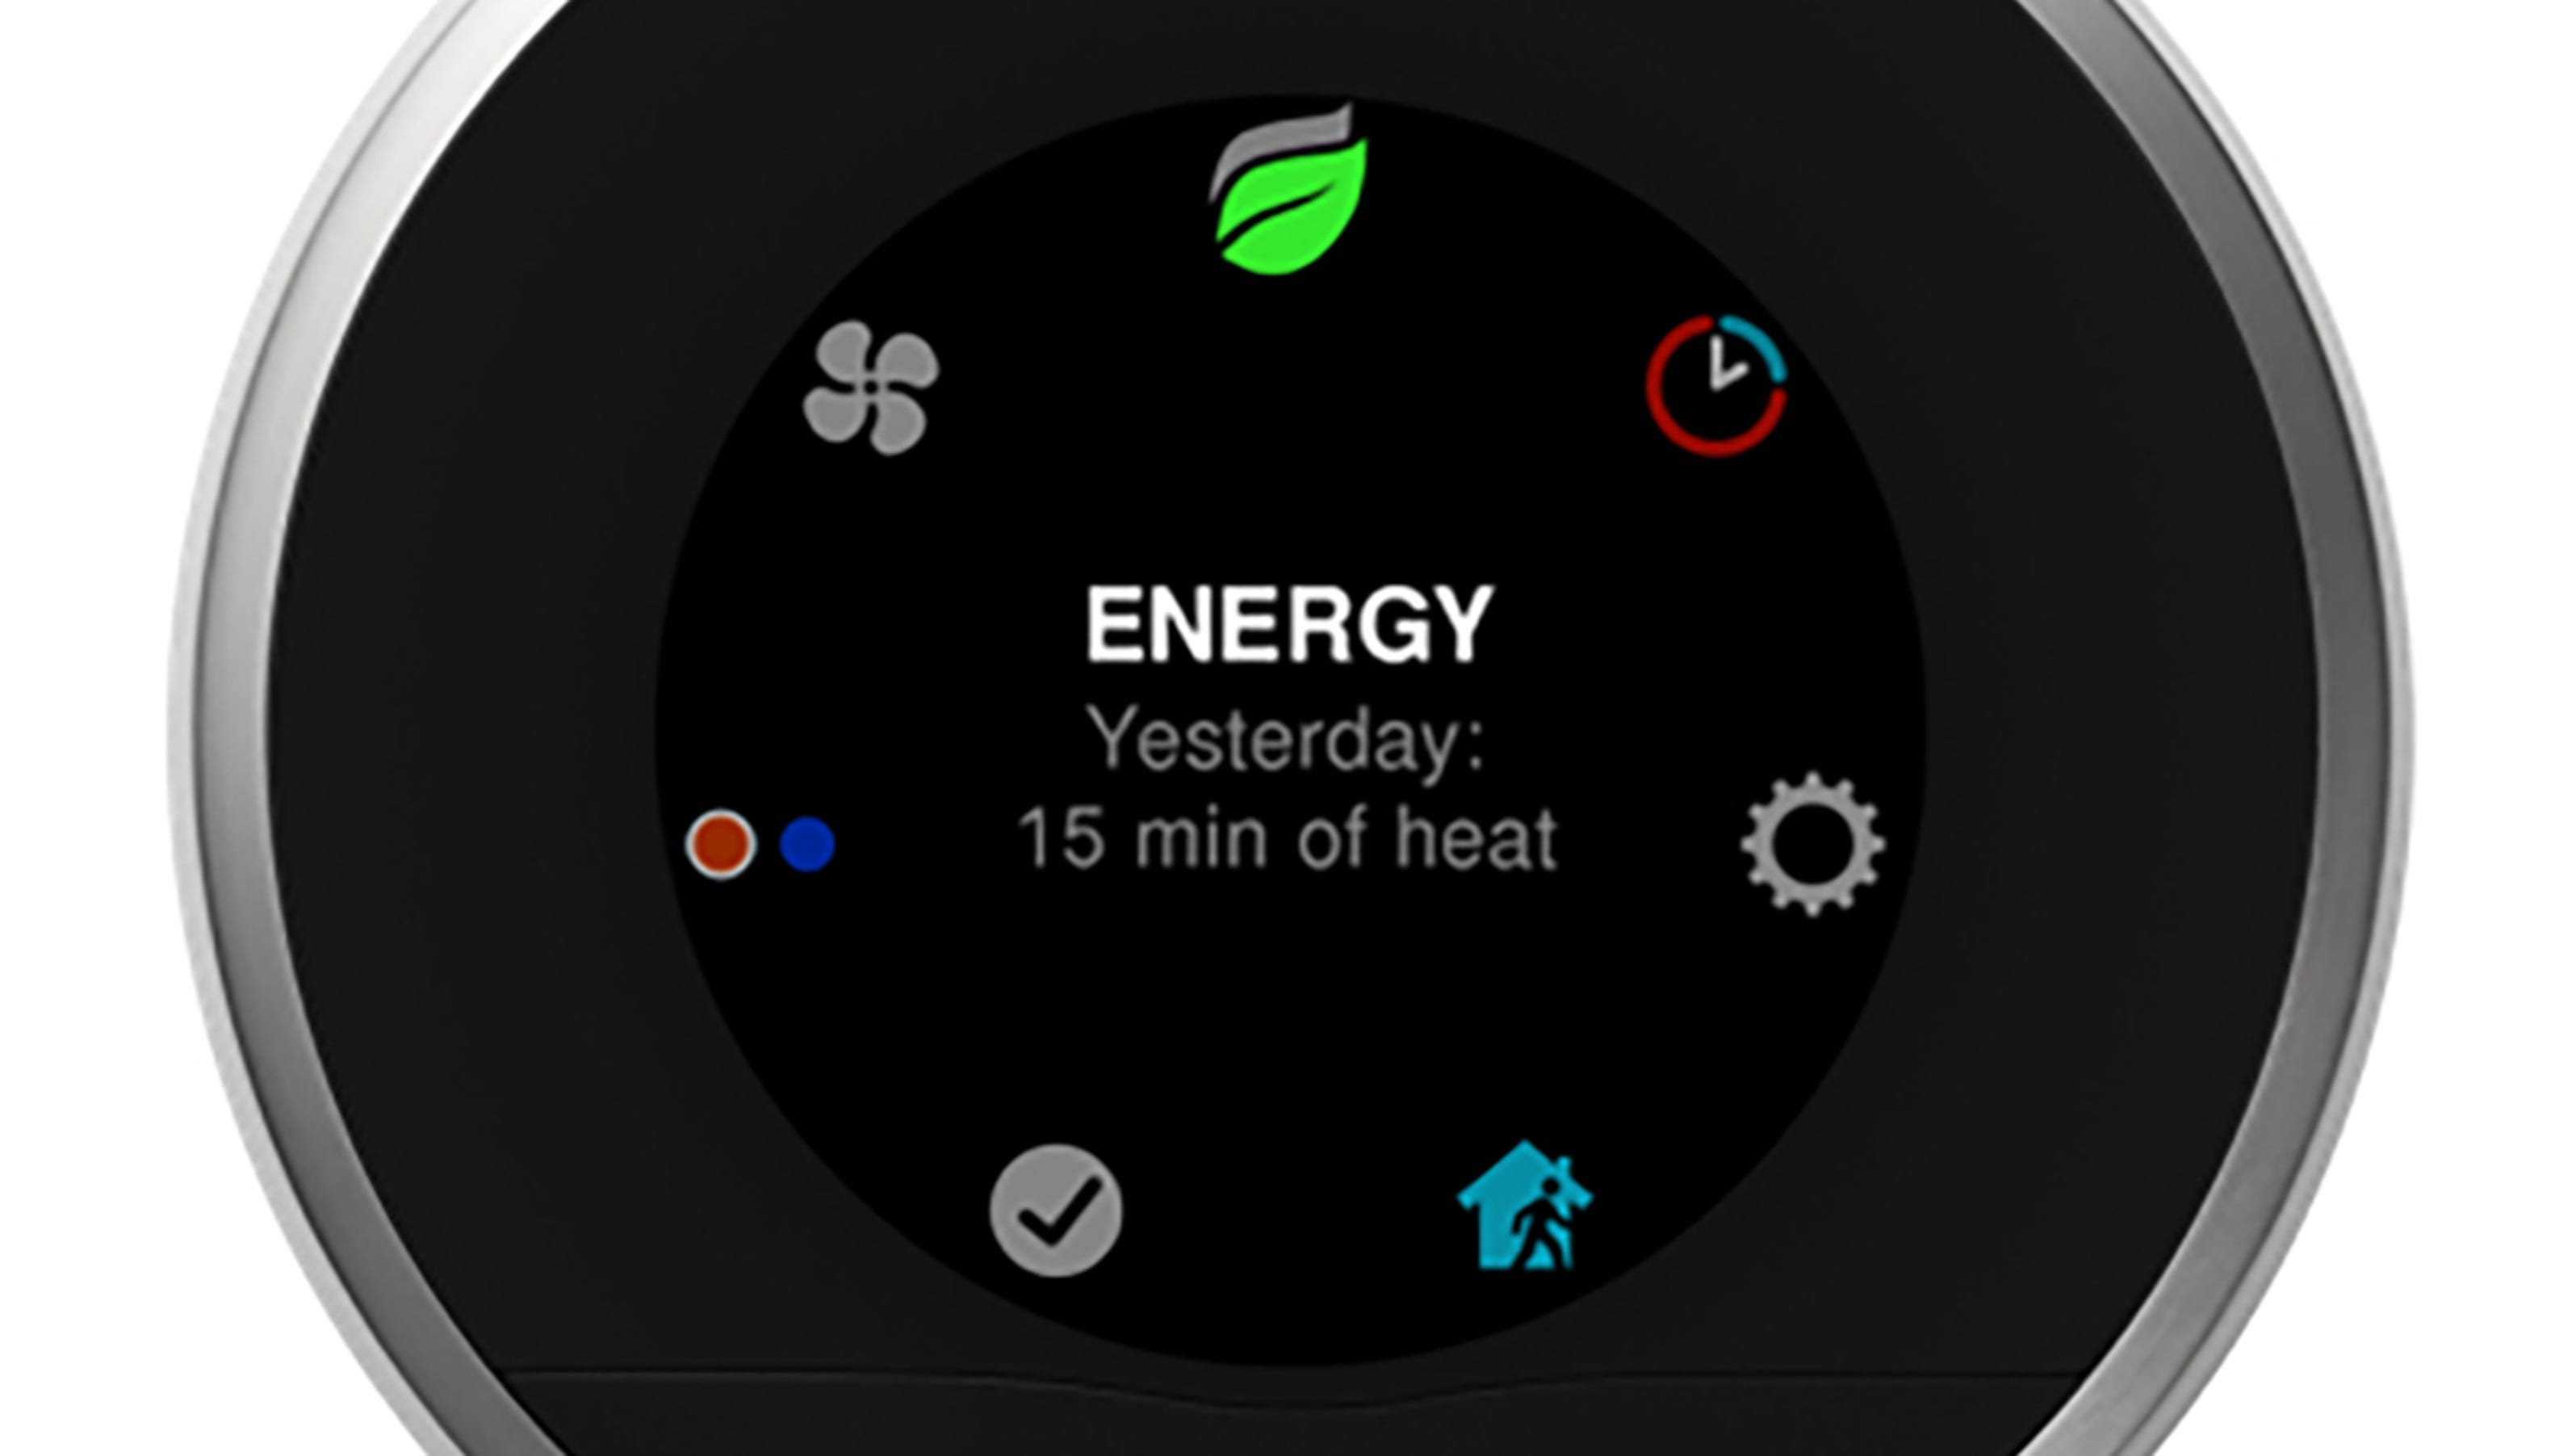 Nest thermostat: Bigger savings after software upgrade #023283